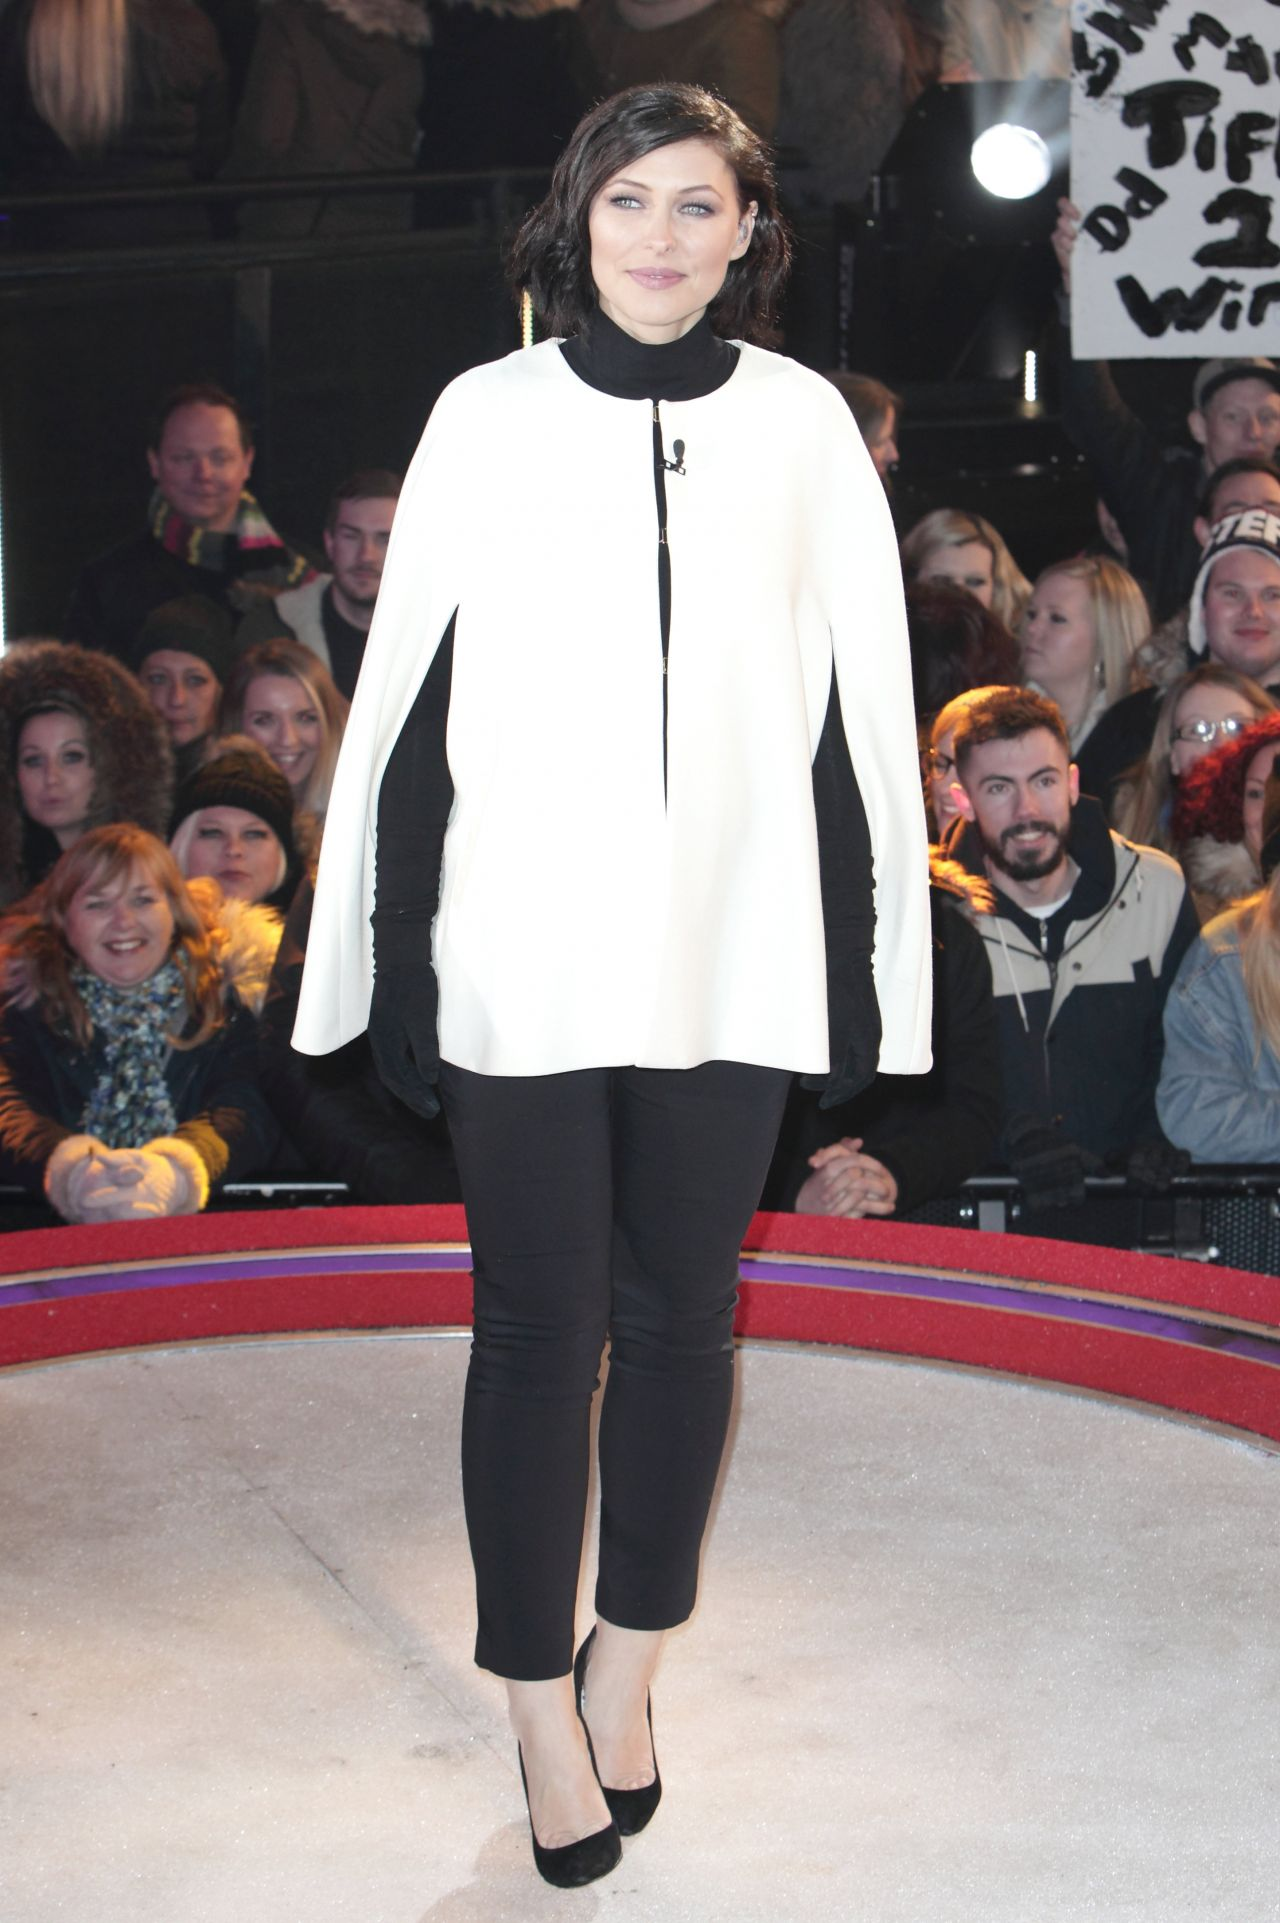 Celebrity Big Brother preview: First live eviction of season?